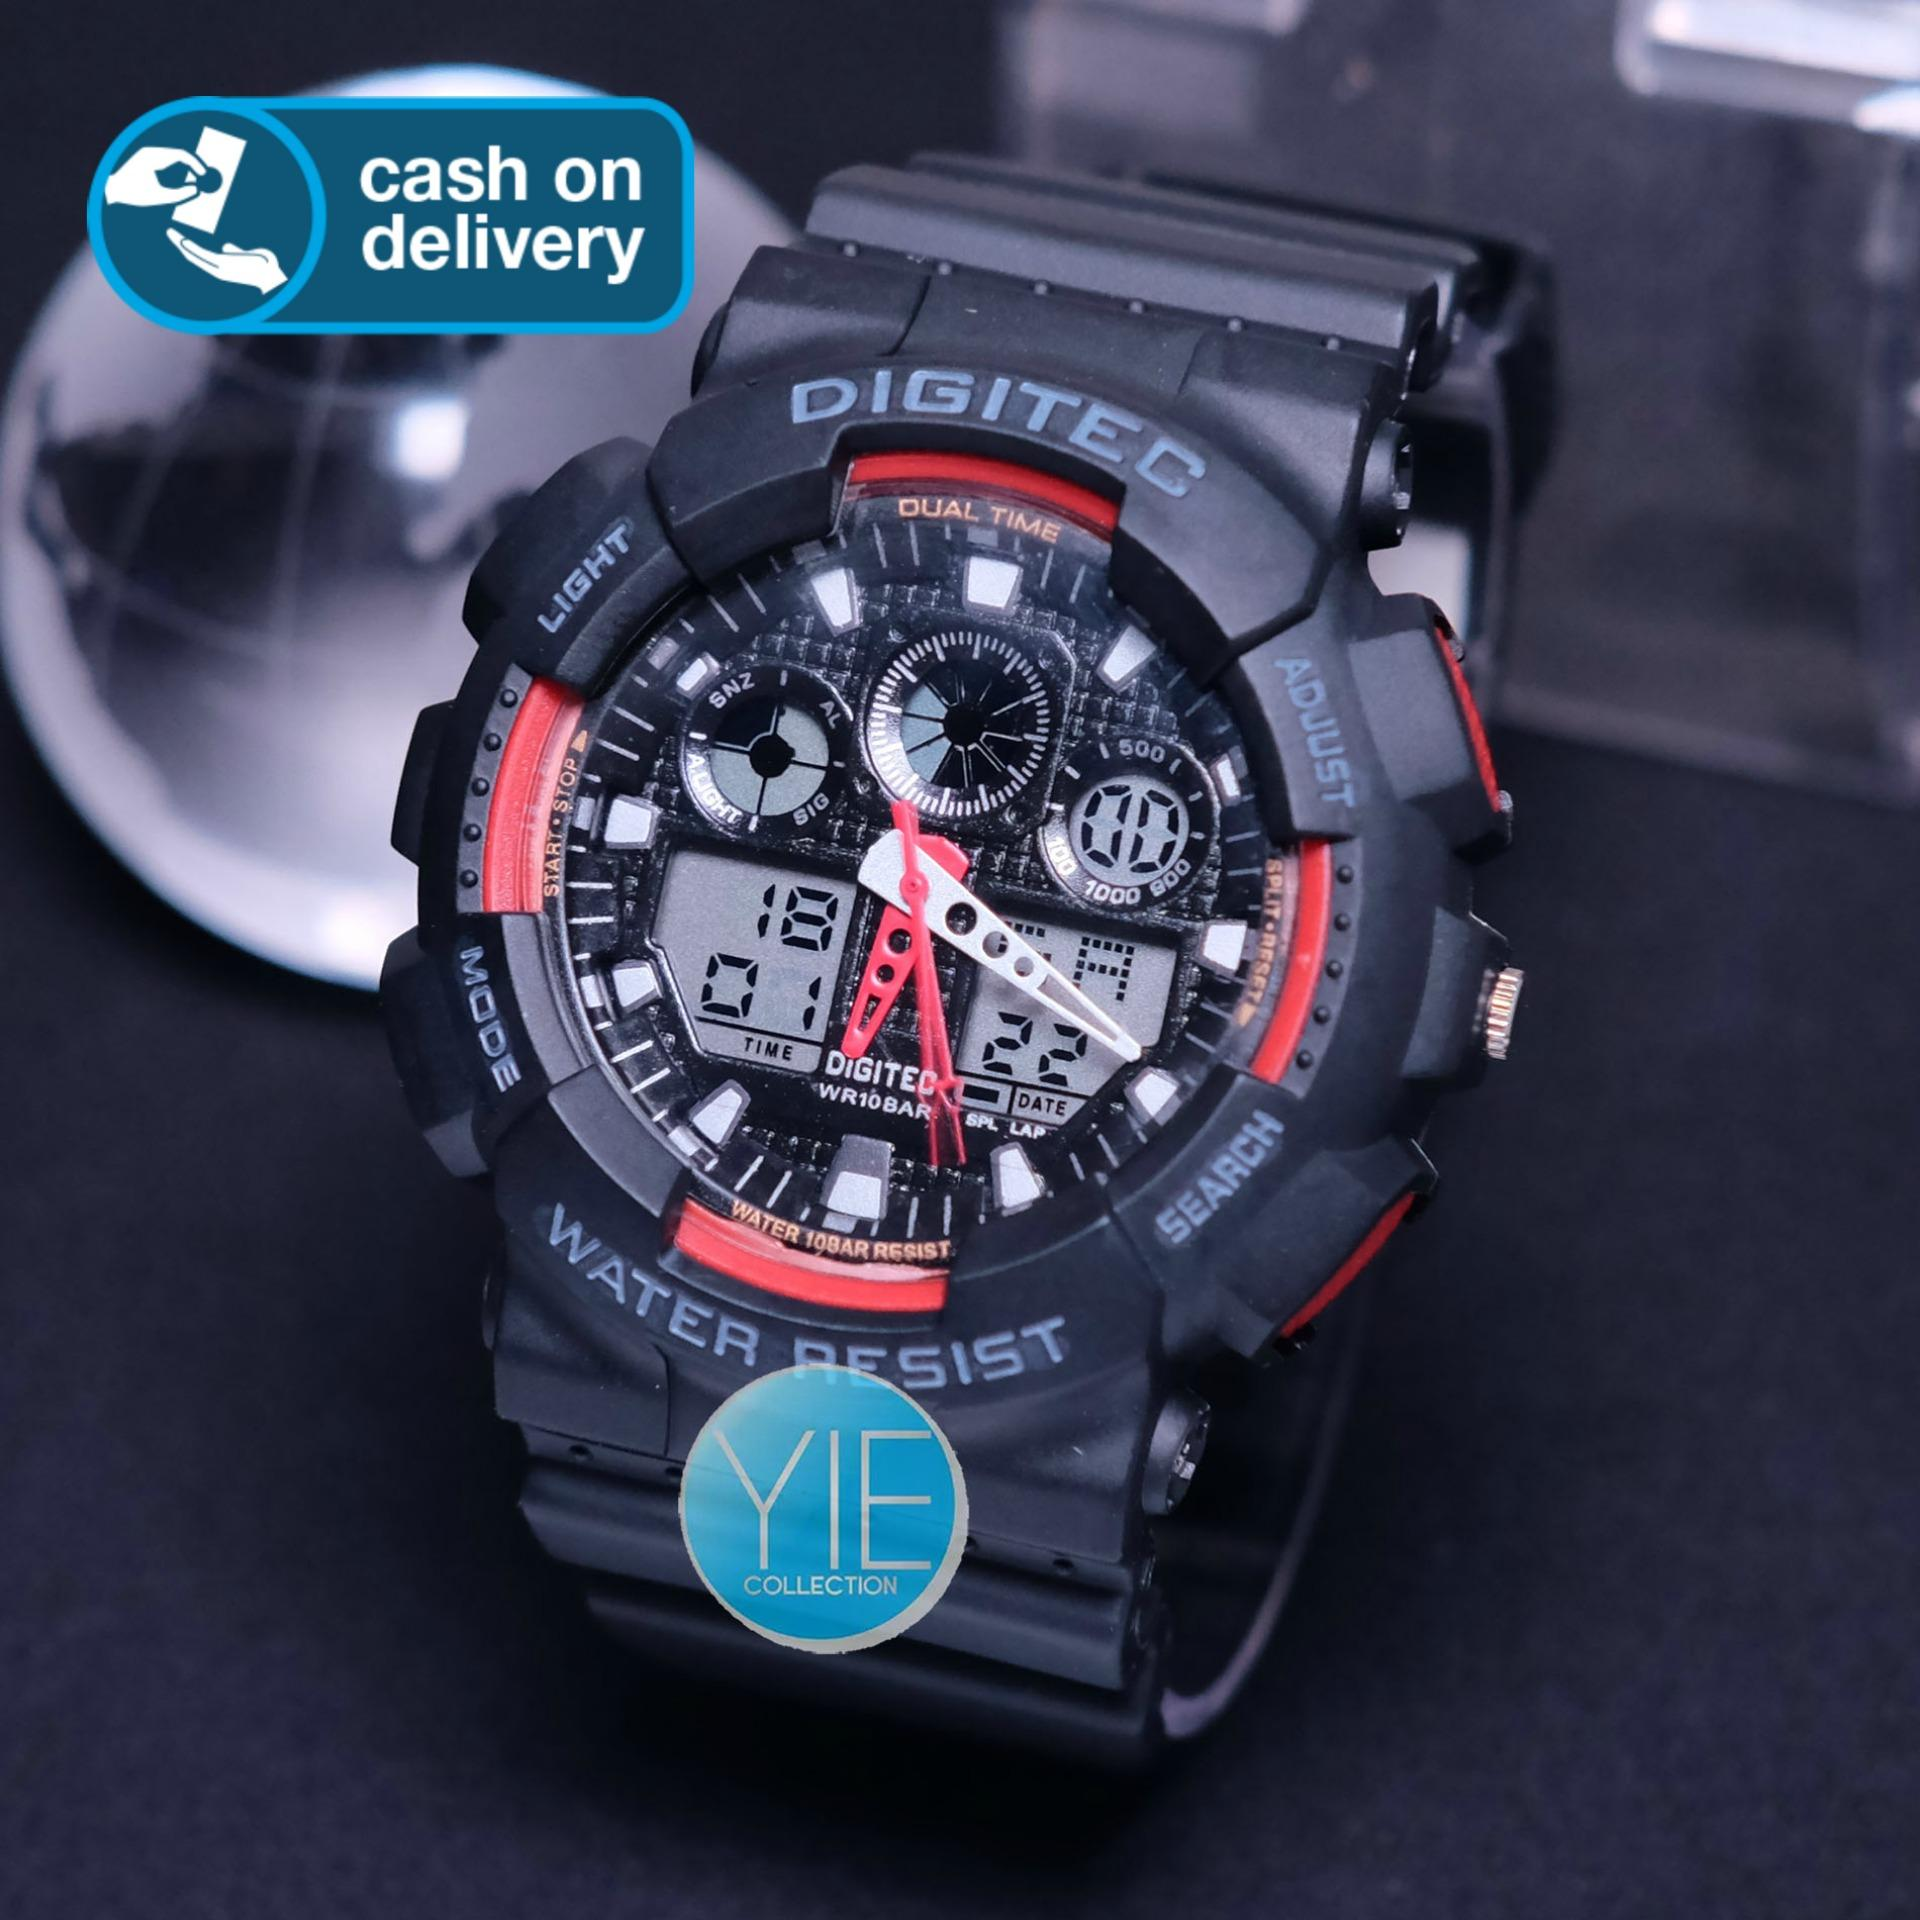 Digitec Original Jam Tangan Pria Army DG 2011 T Dual Time Anti Air - Hitam Merah